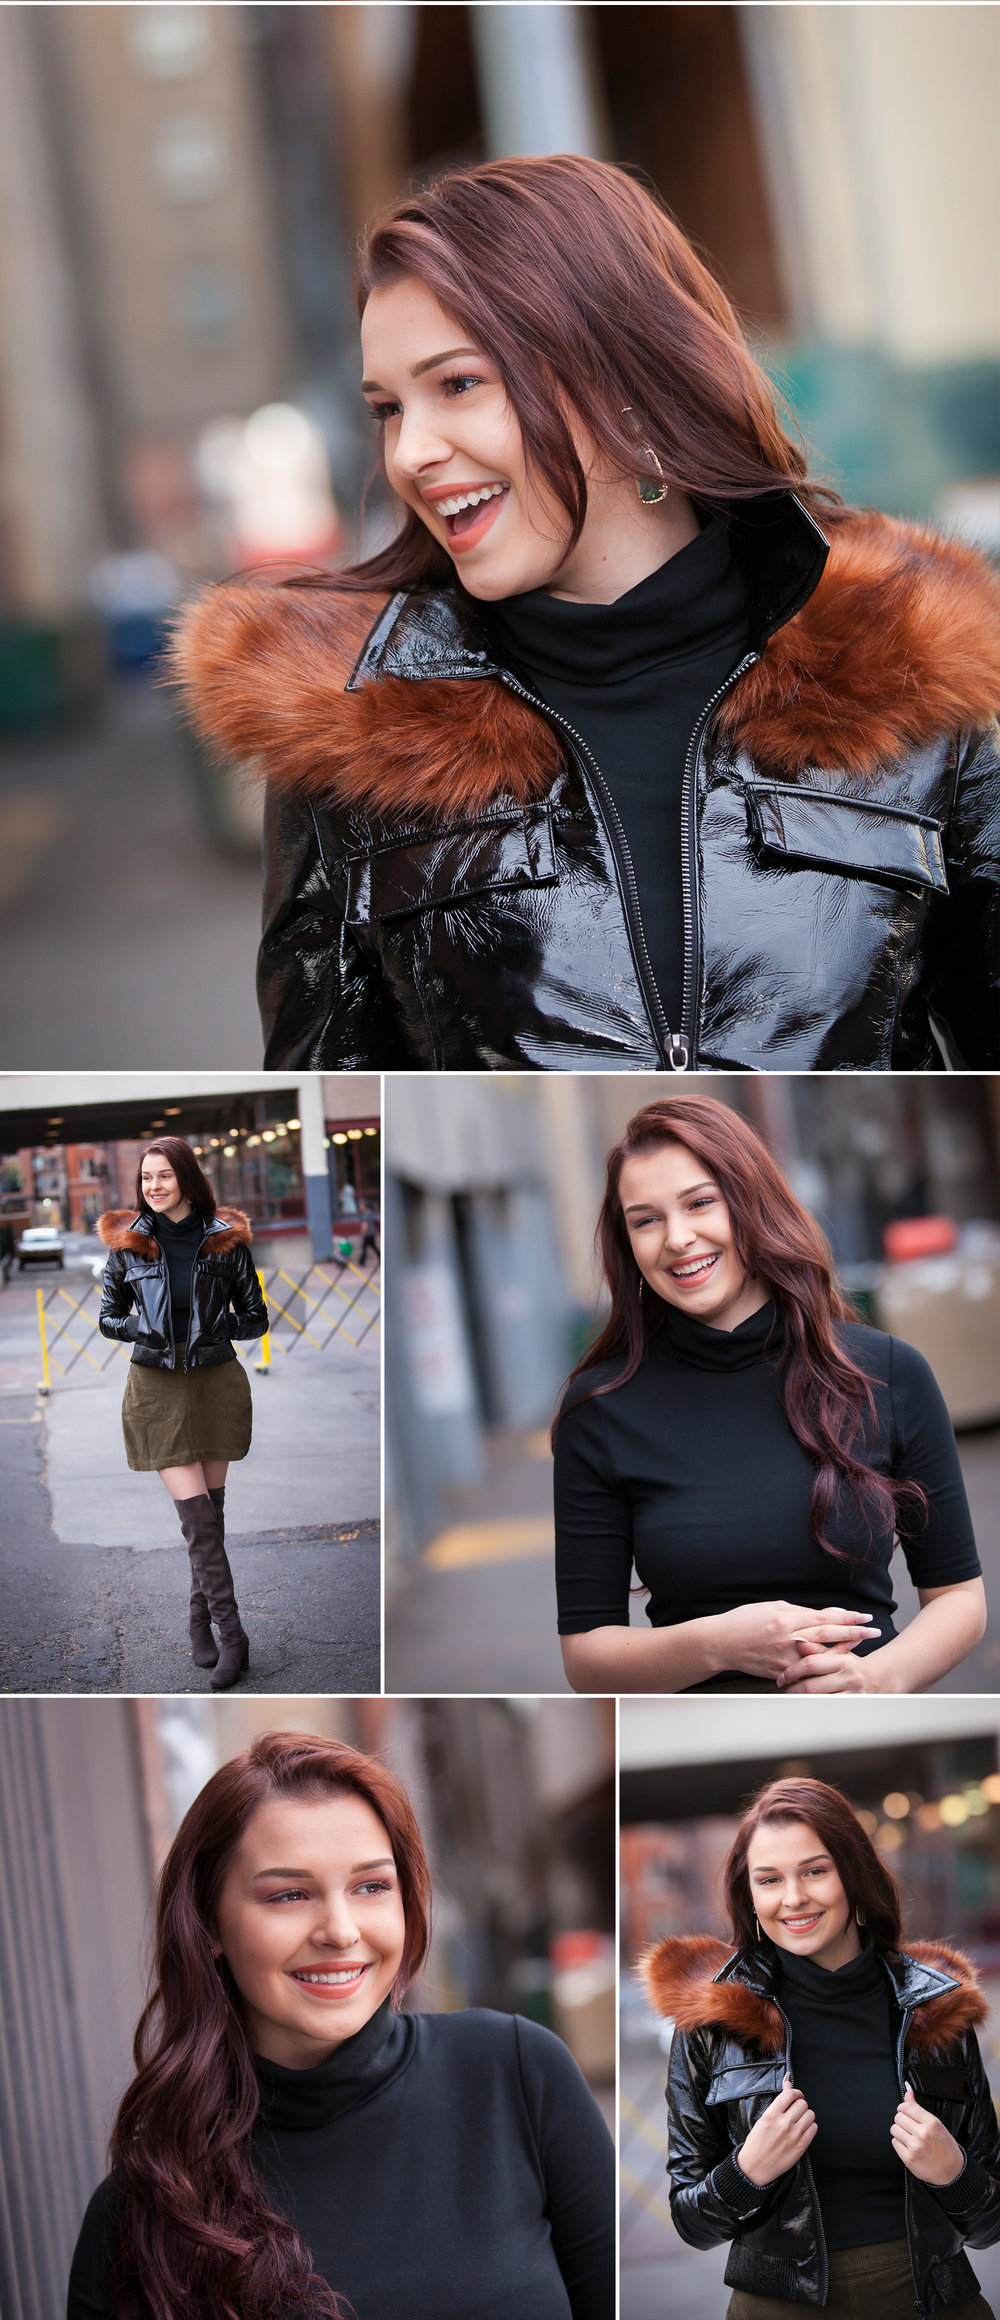 Fun, Fashionable High School Senior Portraits in leather jacket and tall suede boots, photographed in alley with Denver photographer Jennifer Koskinen, Merritt Portrait Studio